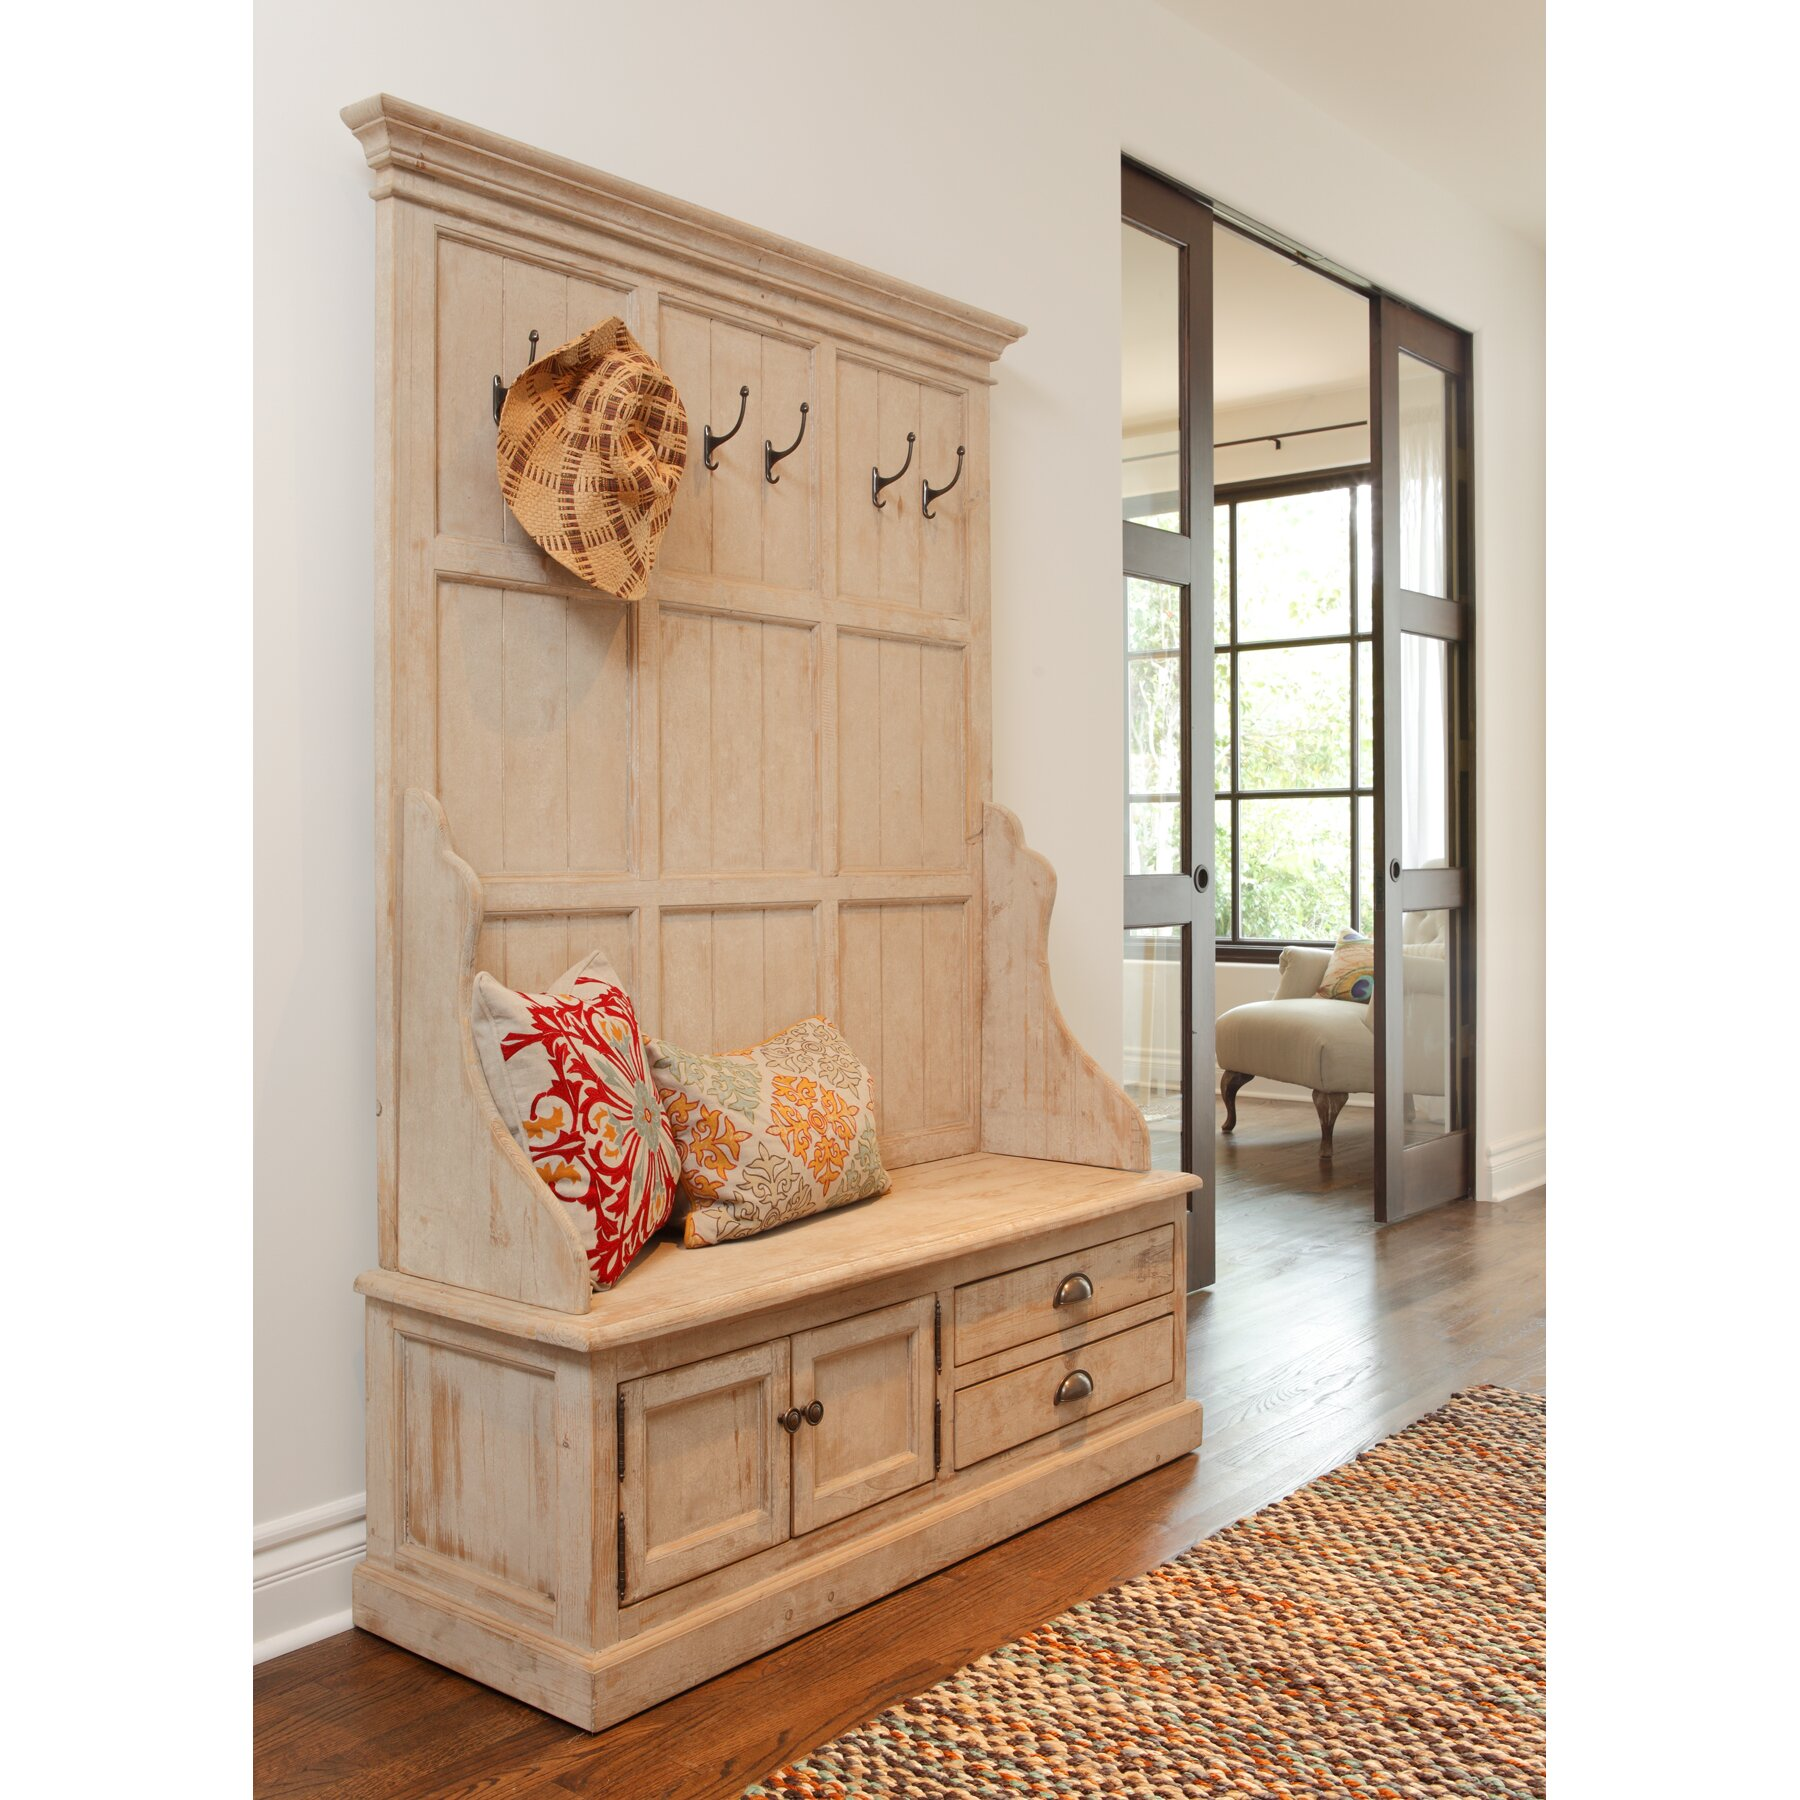 Kosas Home Elodie Pine Storage Entryway Bench & Reviews